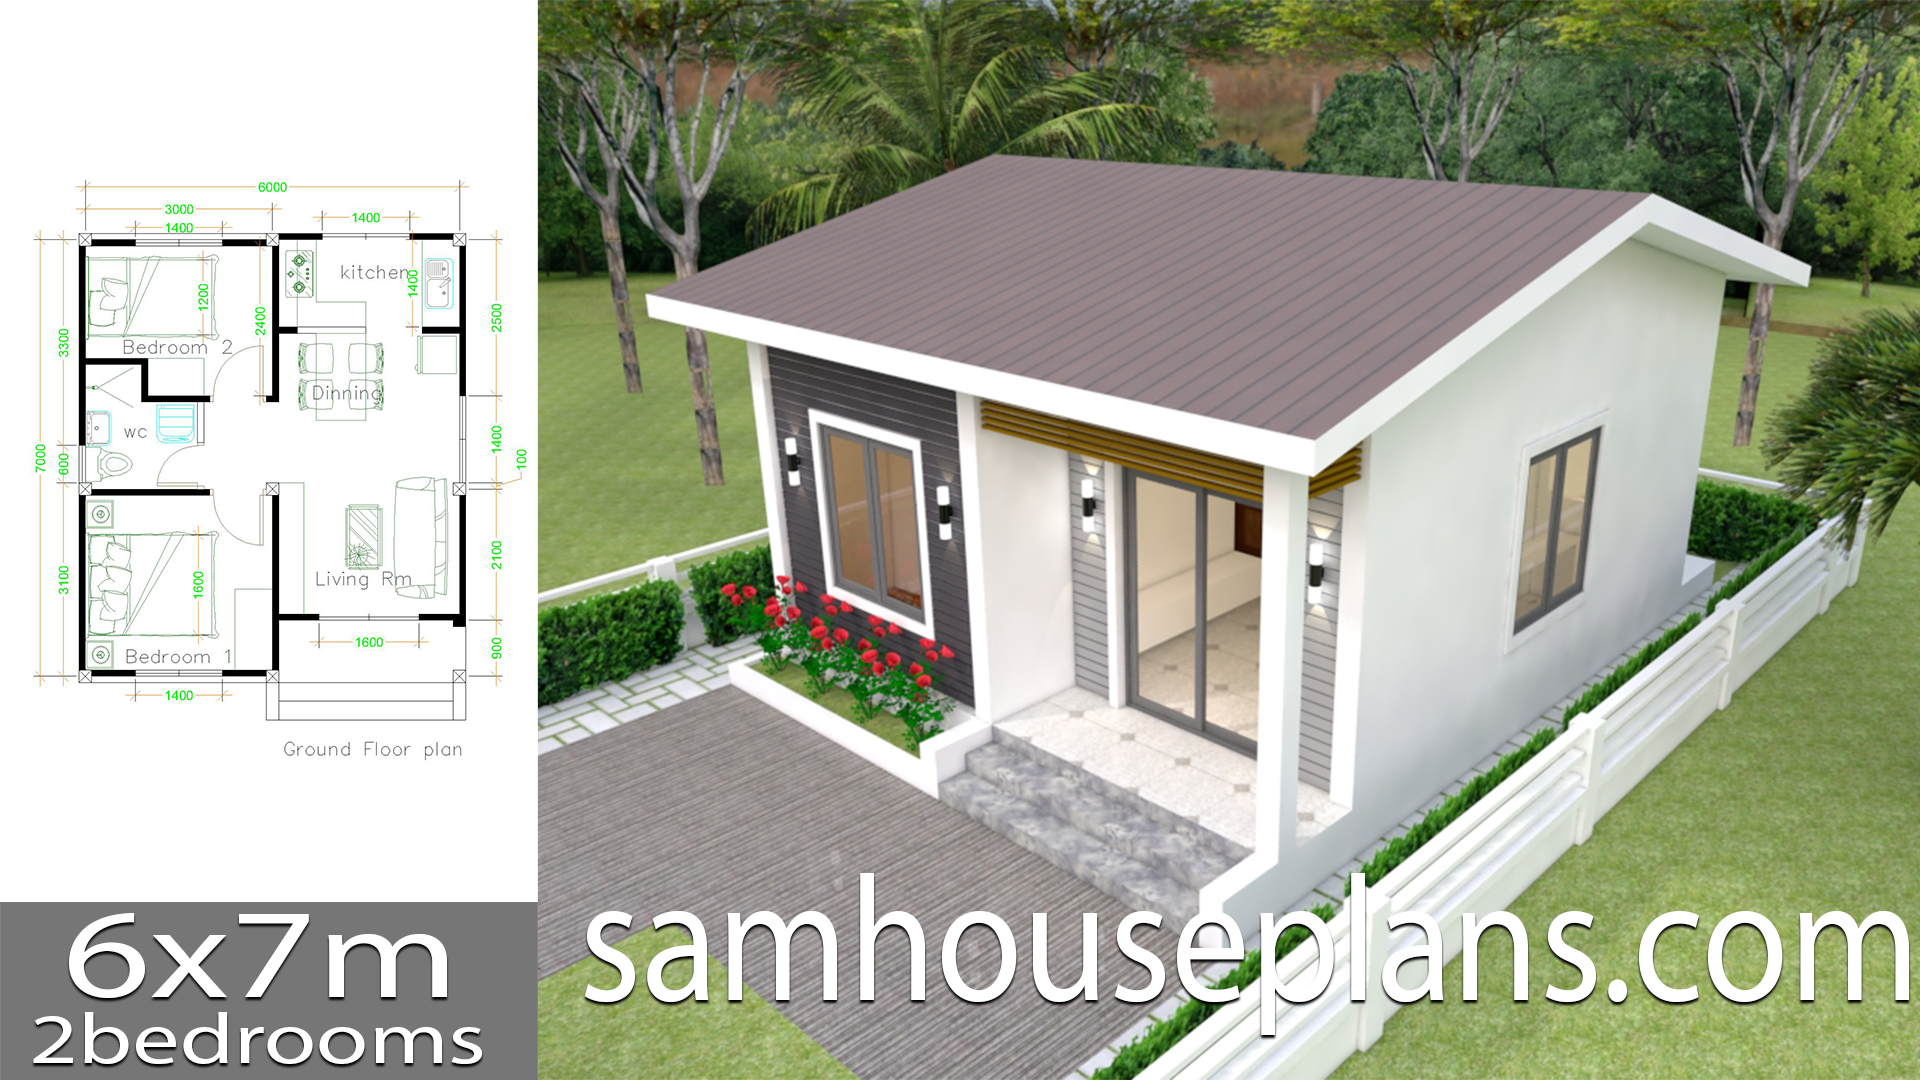 House Plans 6x7m With 2 Bedrooms Sam House Plans